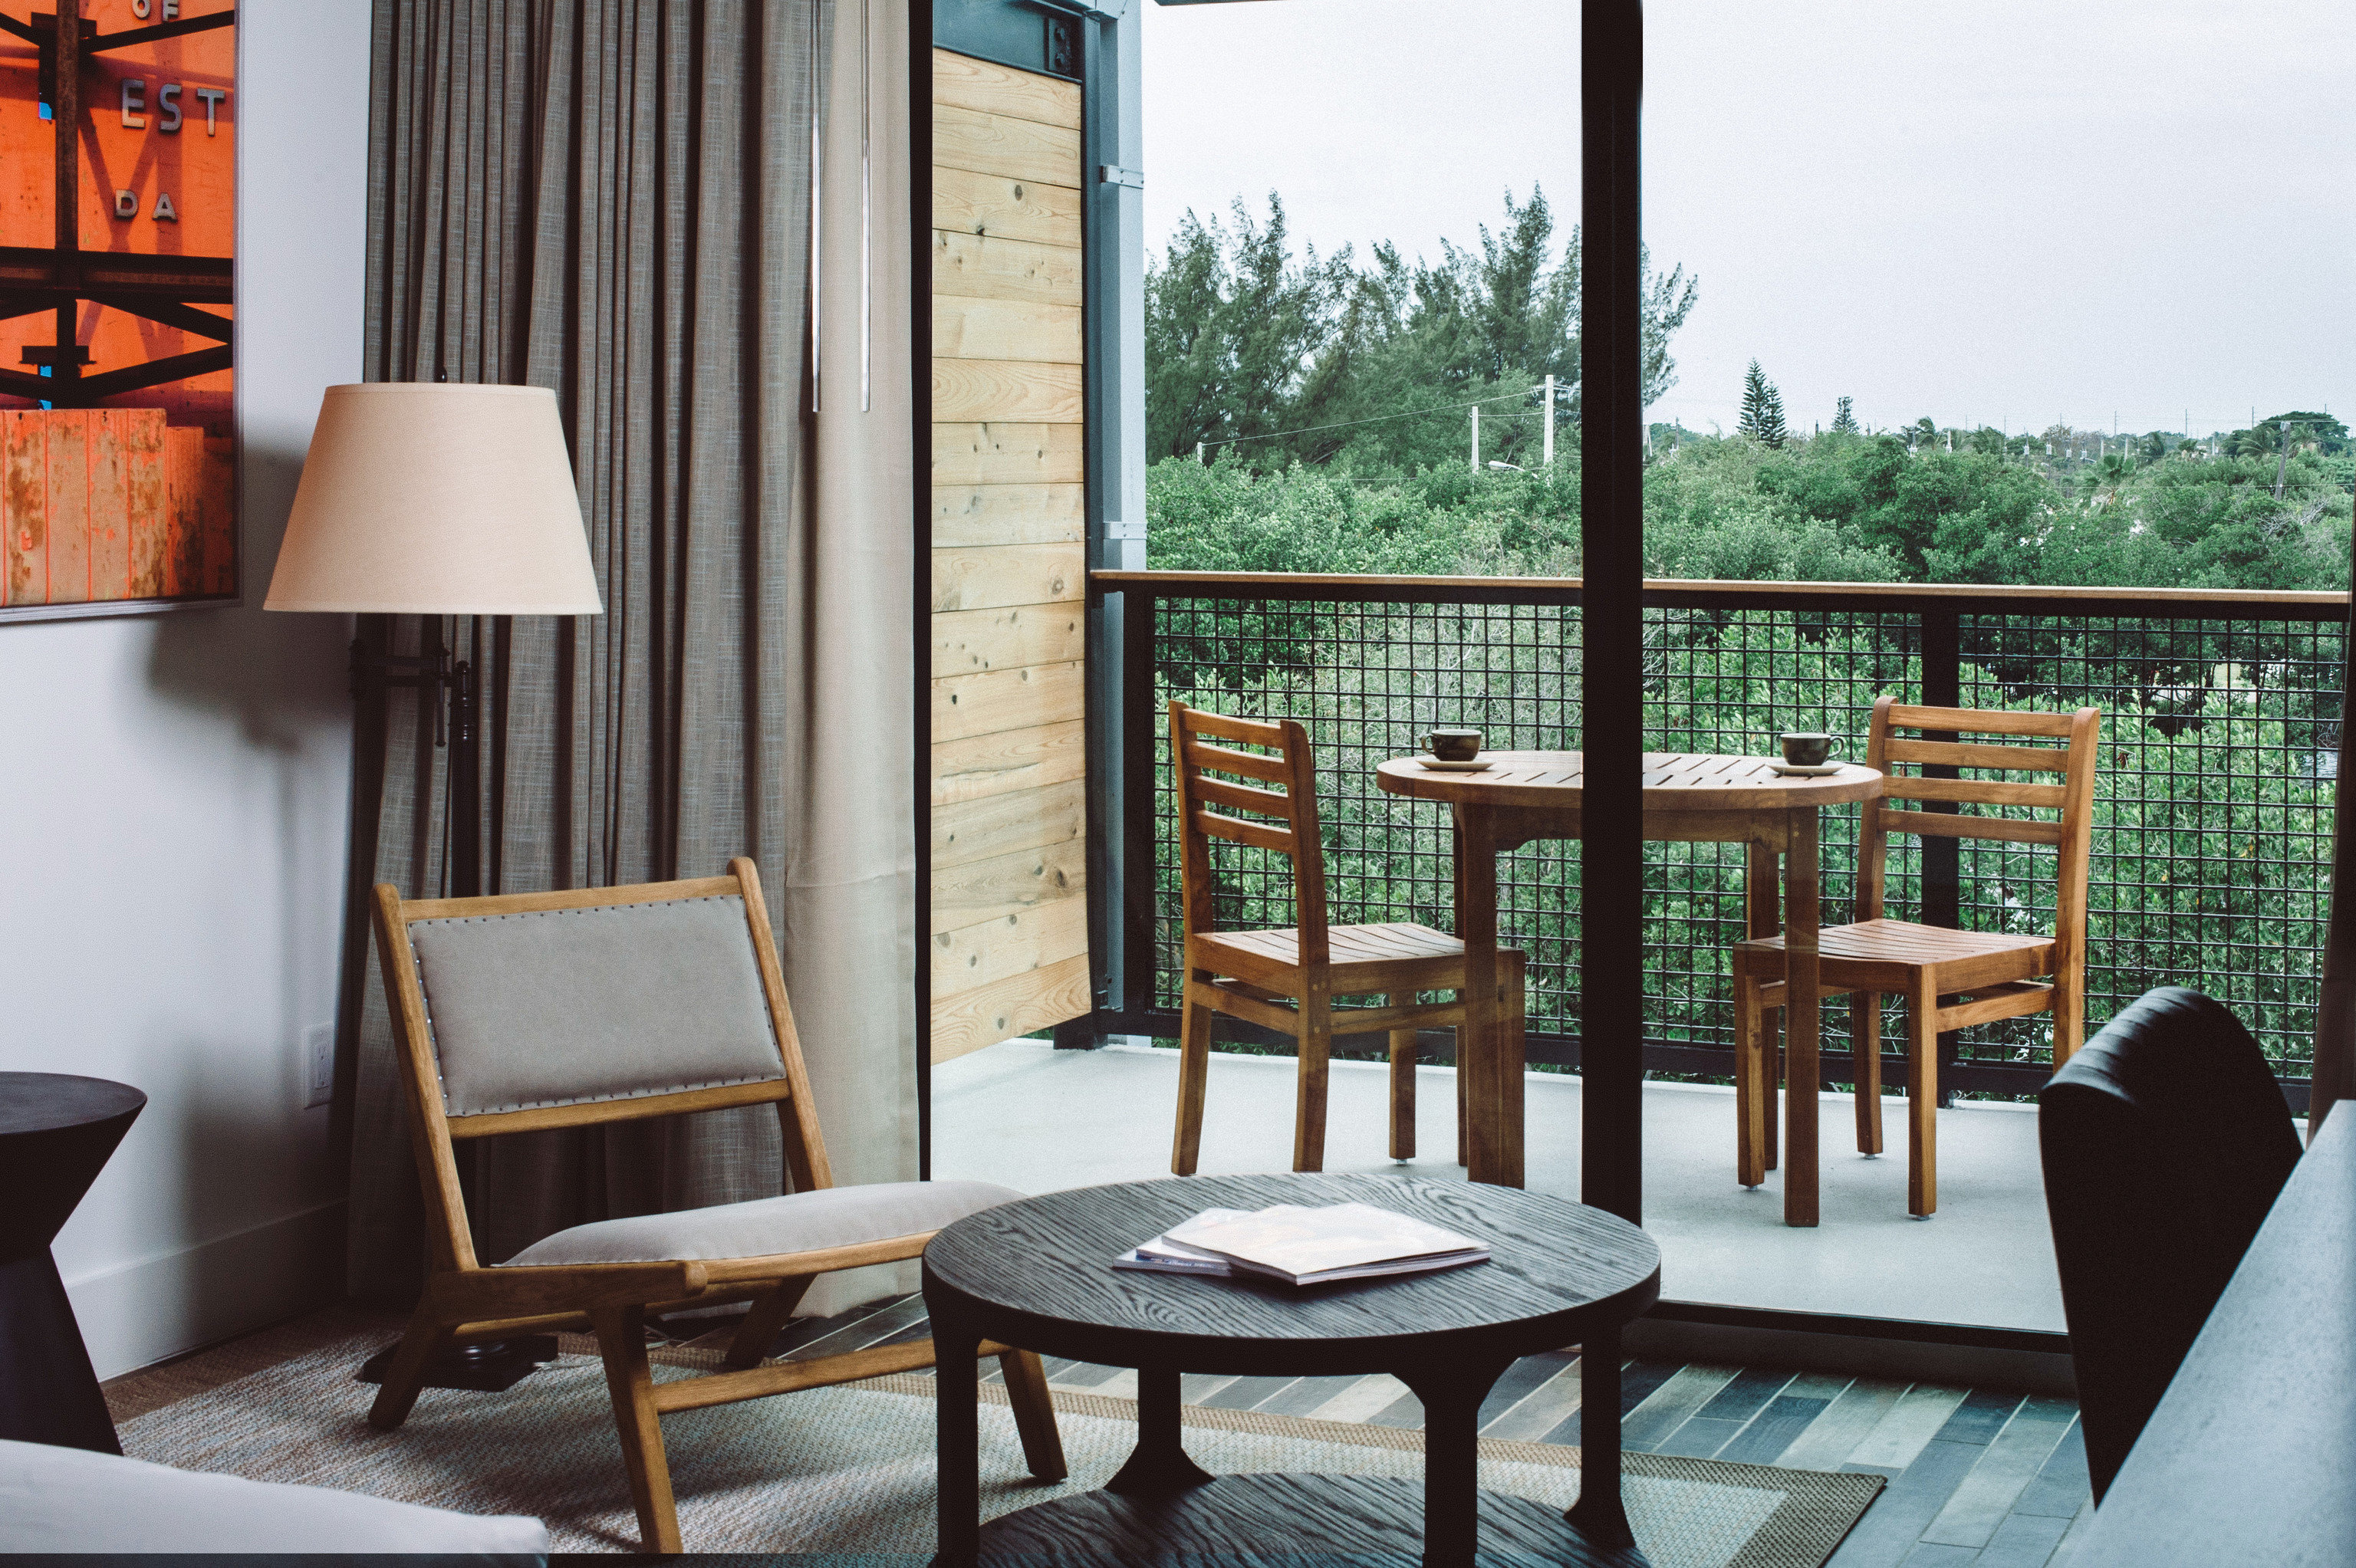 Hotels Romance floor table room chair indoor Living furniture interior design window real estate home living room outdoor structure house Balcony area arranged dining table